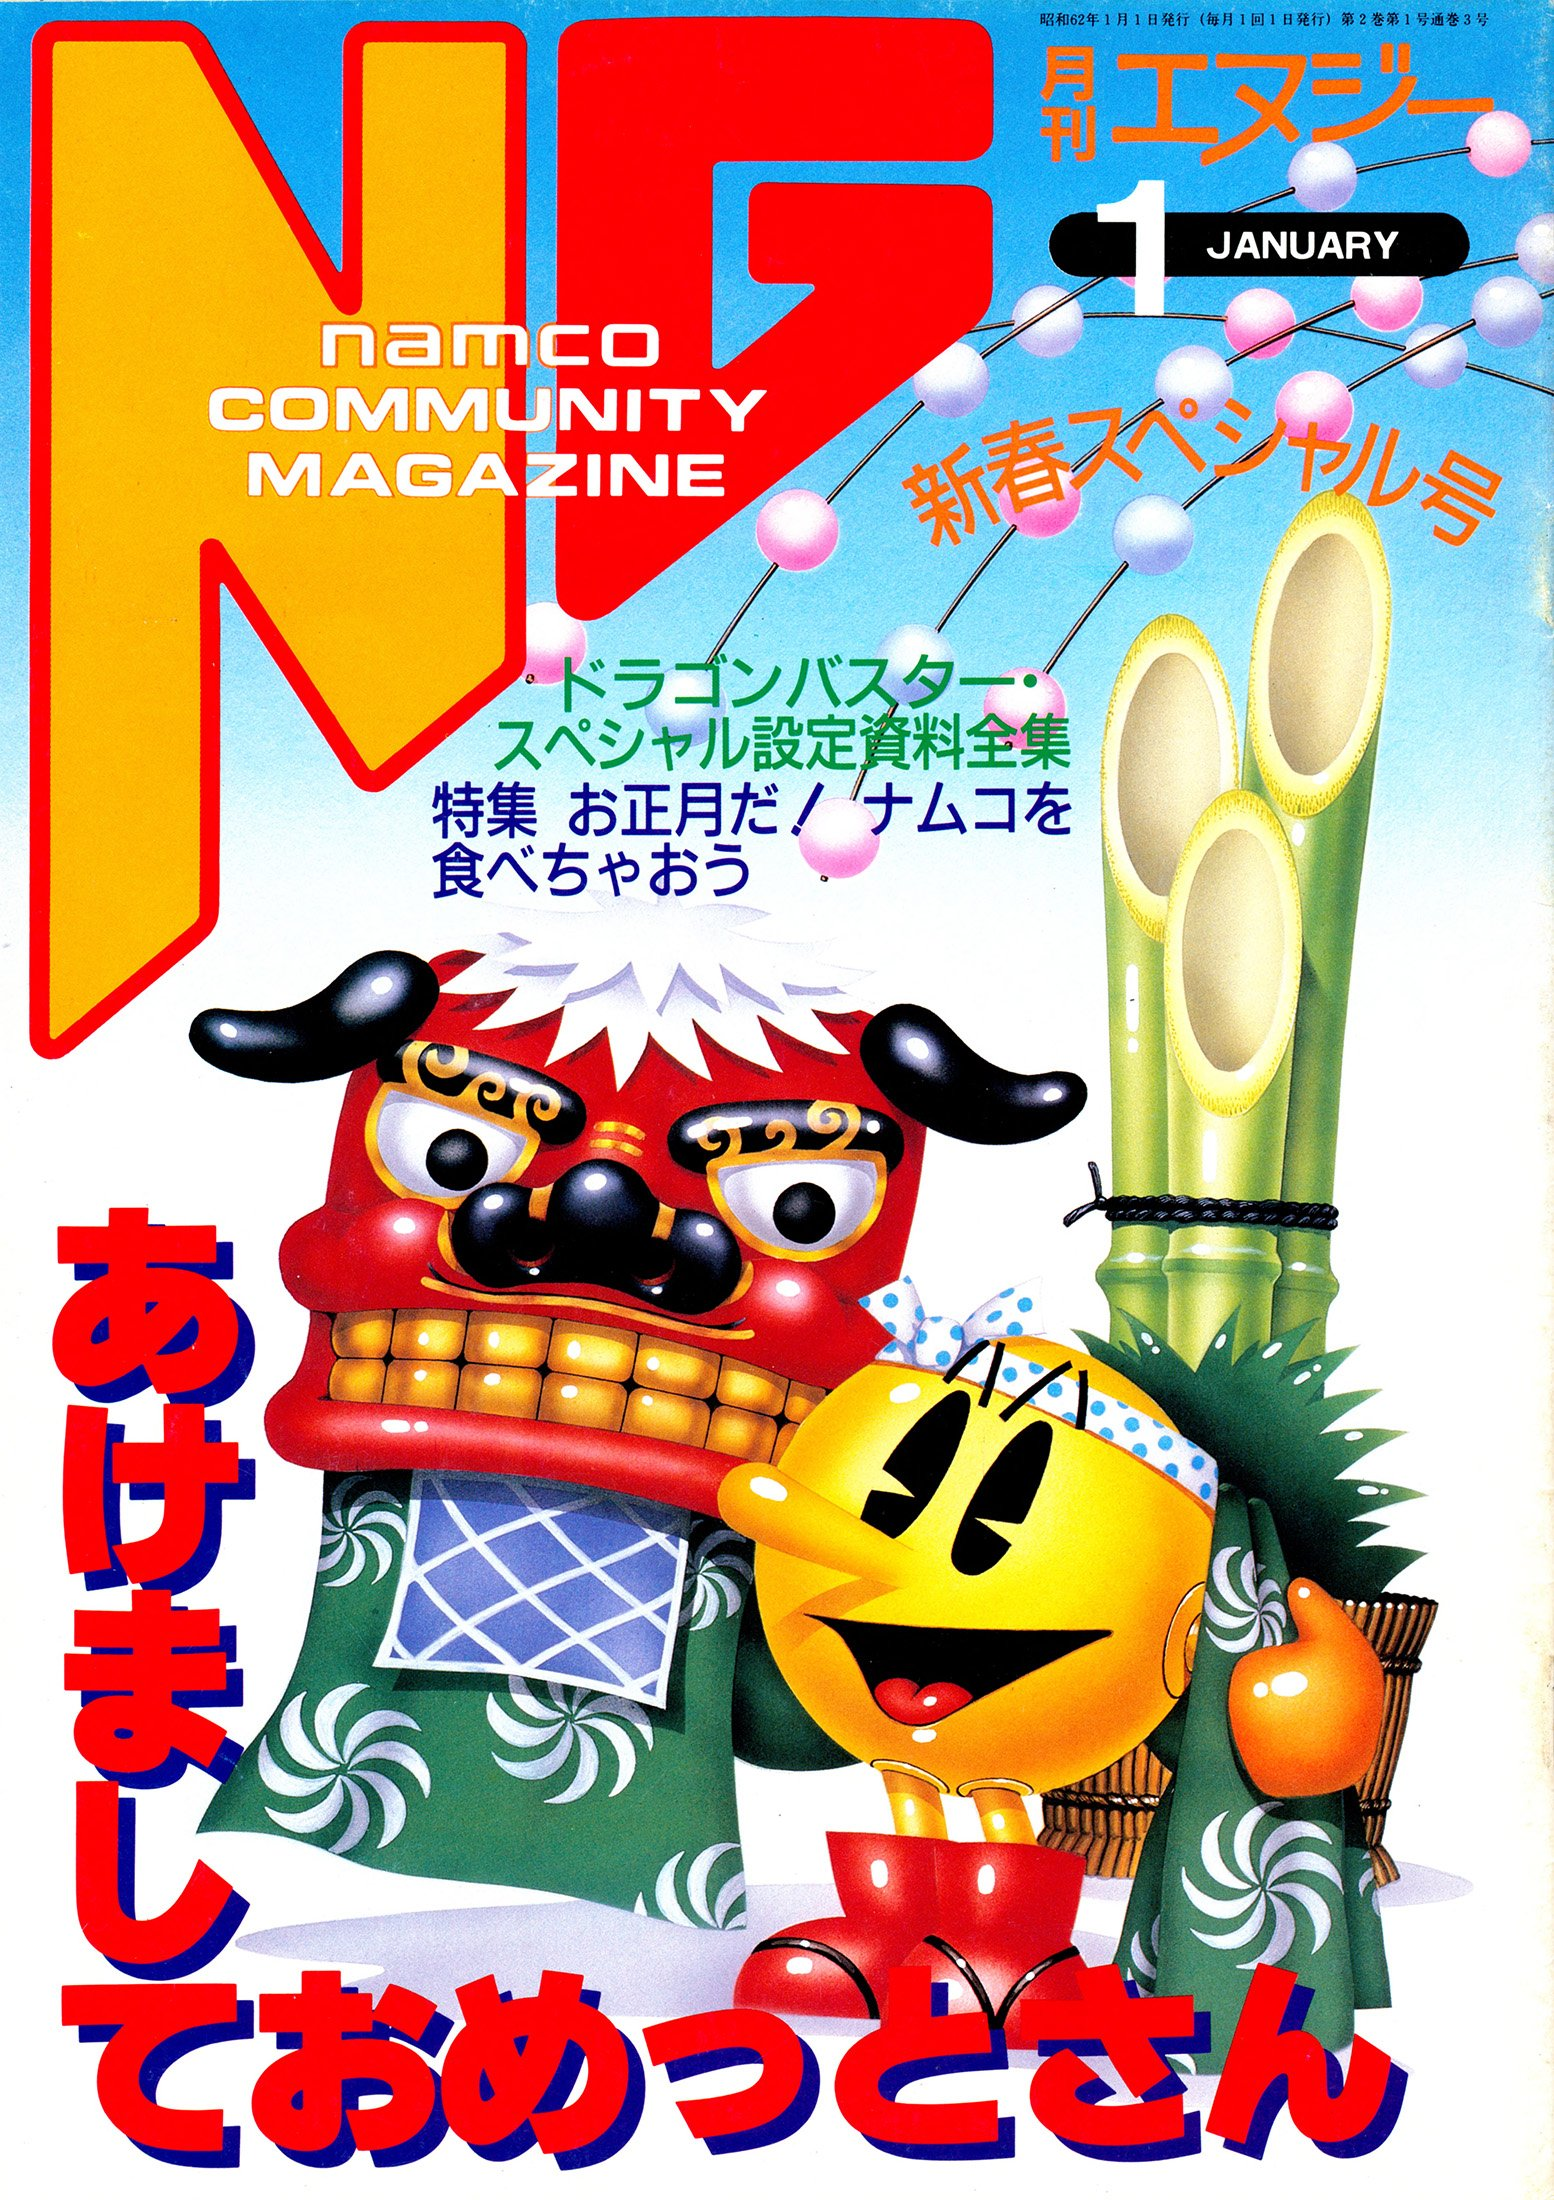 NG Namco Community Magazine Issue 03 (January 1987)